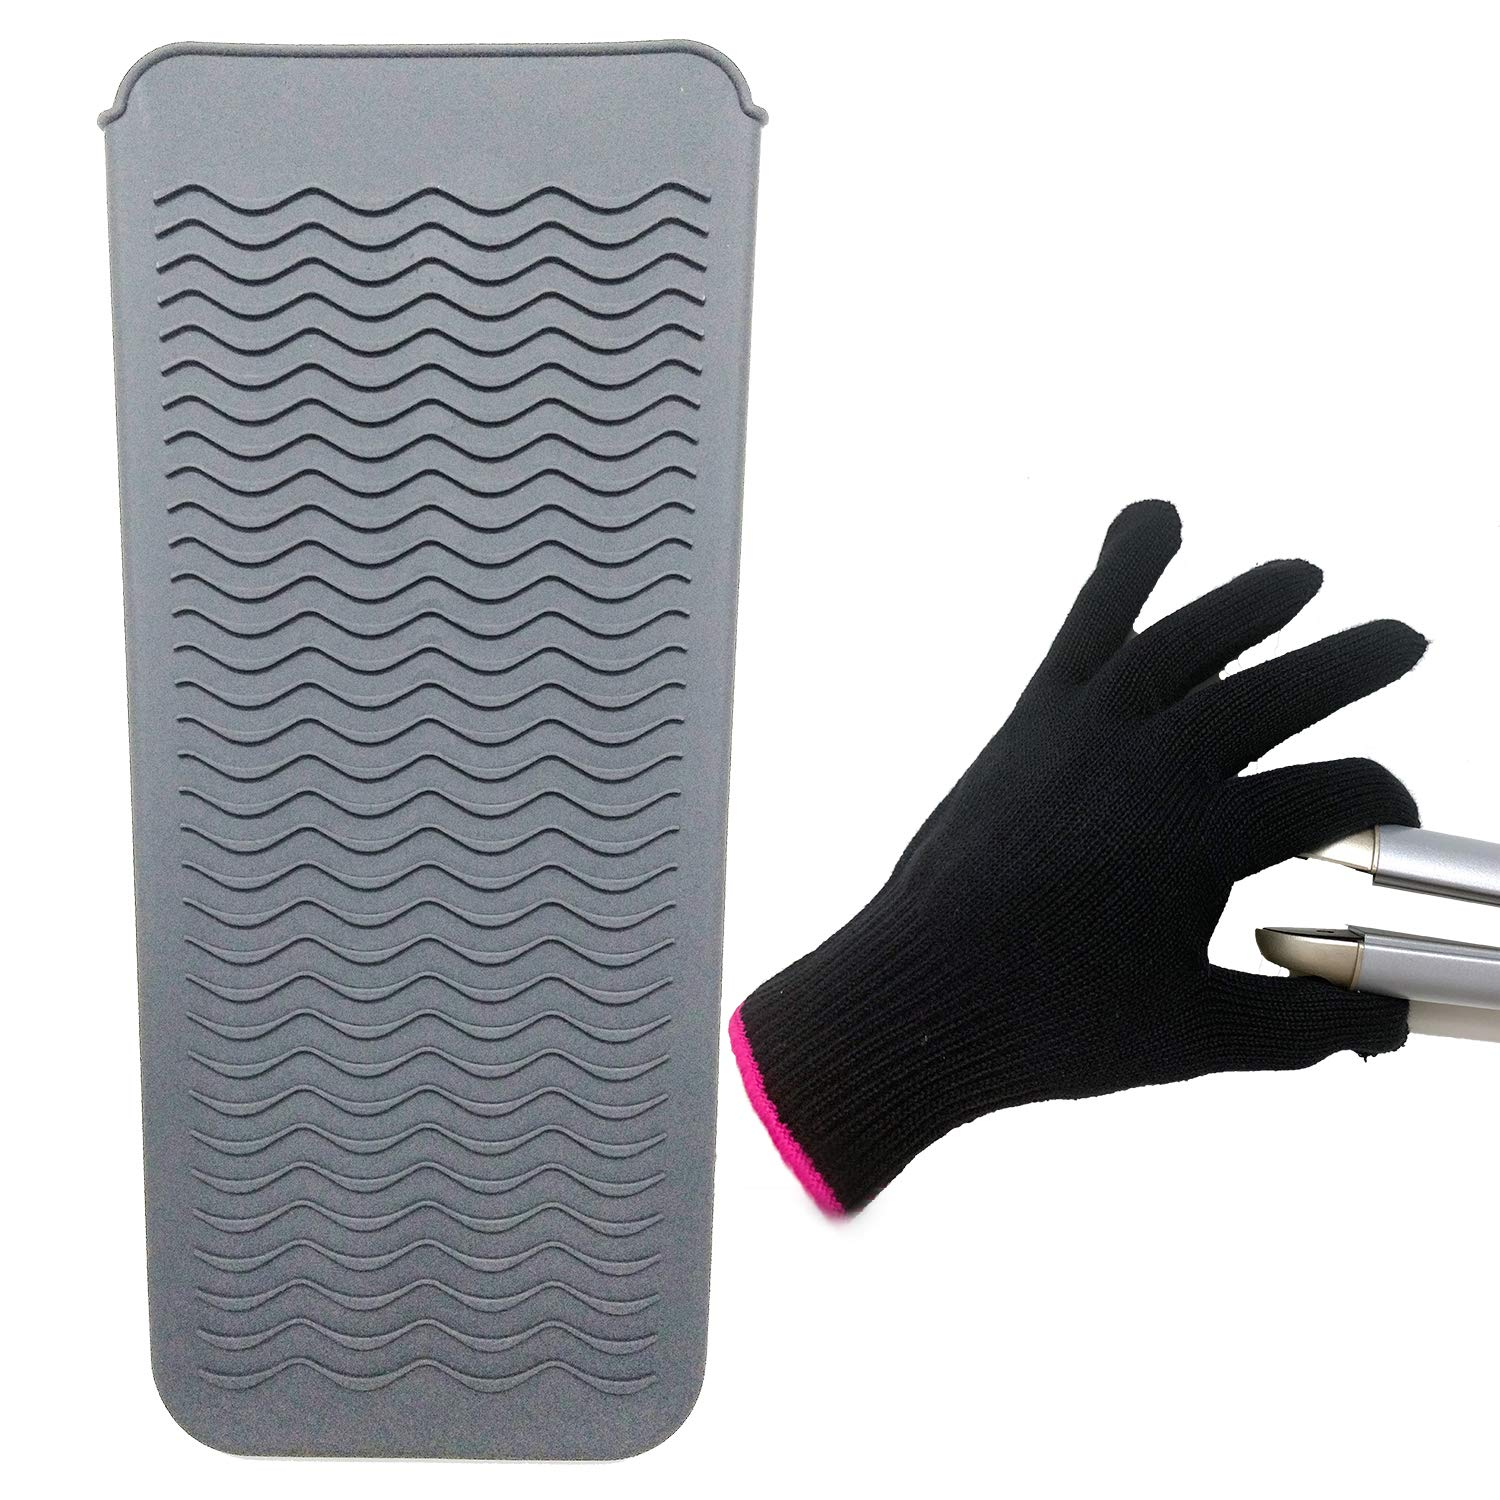 """Heat Resistant Mat Pouch and Heat Resistant Glove for Curling Irons, Hair Straightener, Flat Irons and Hair Styling Tools 11.5"""" x 6"""", Food Grade Silicone, Gray"""